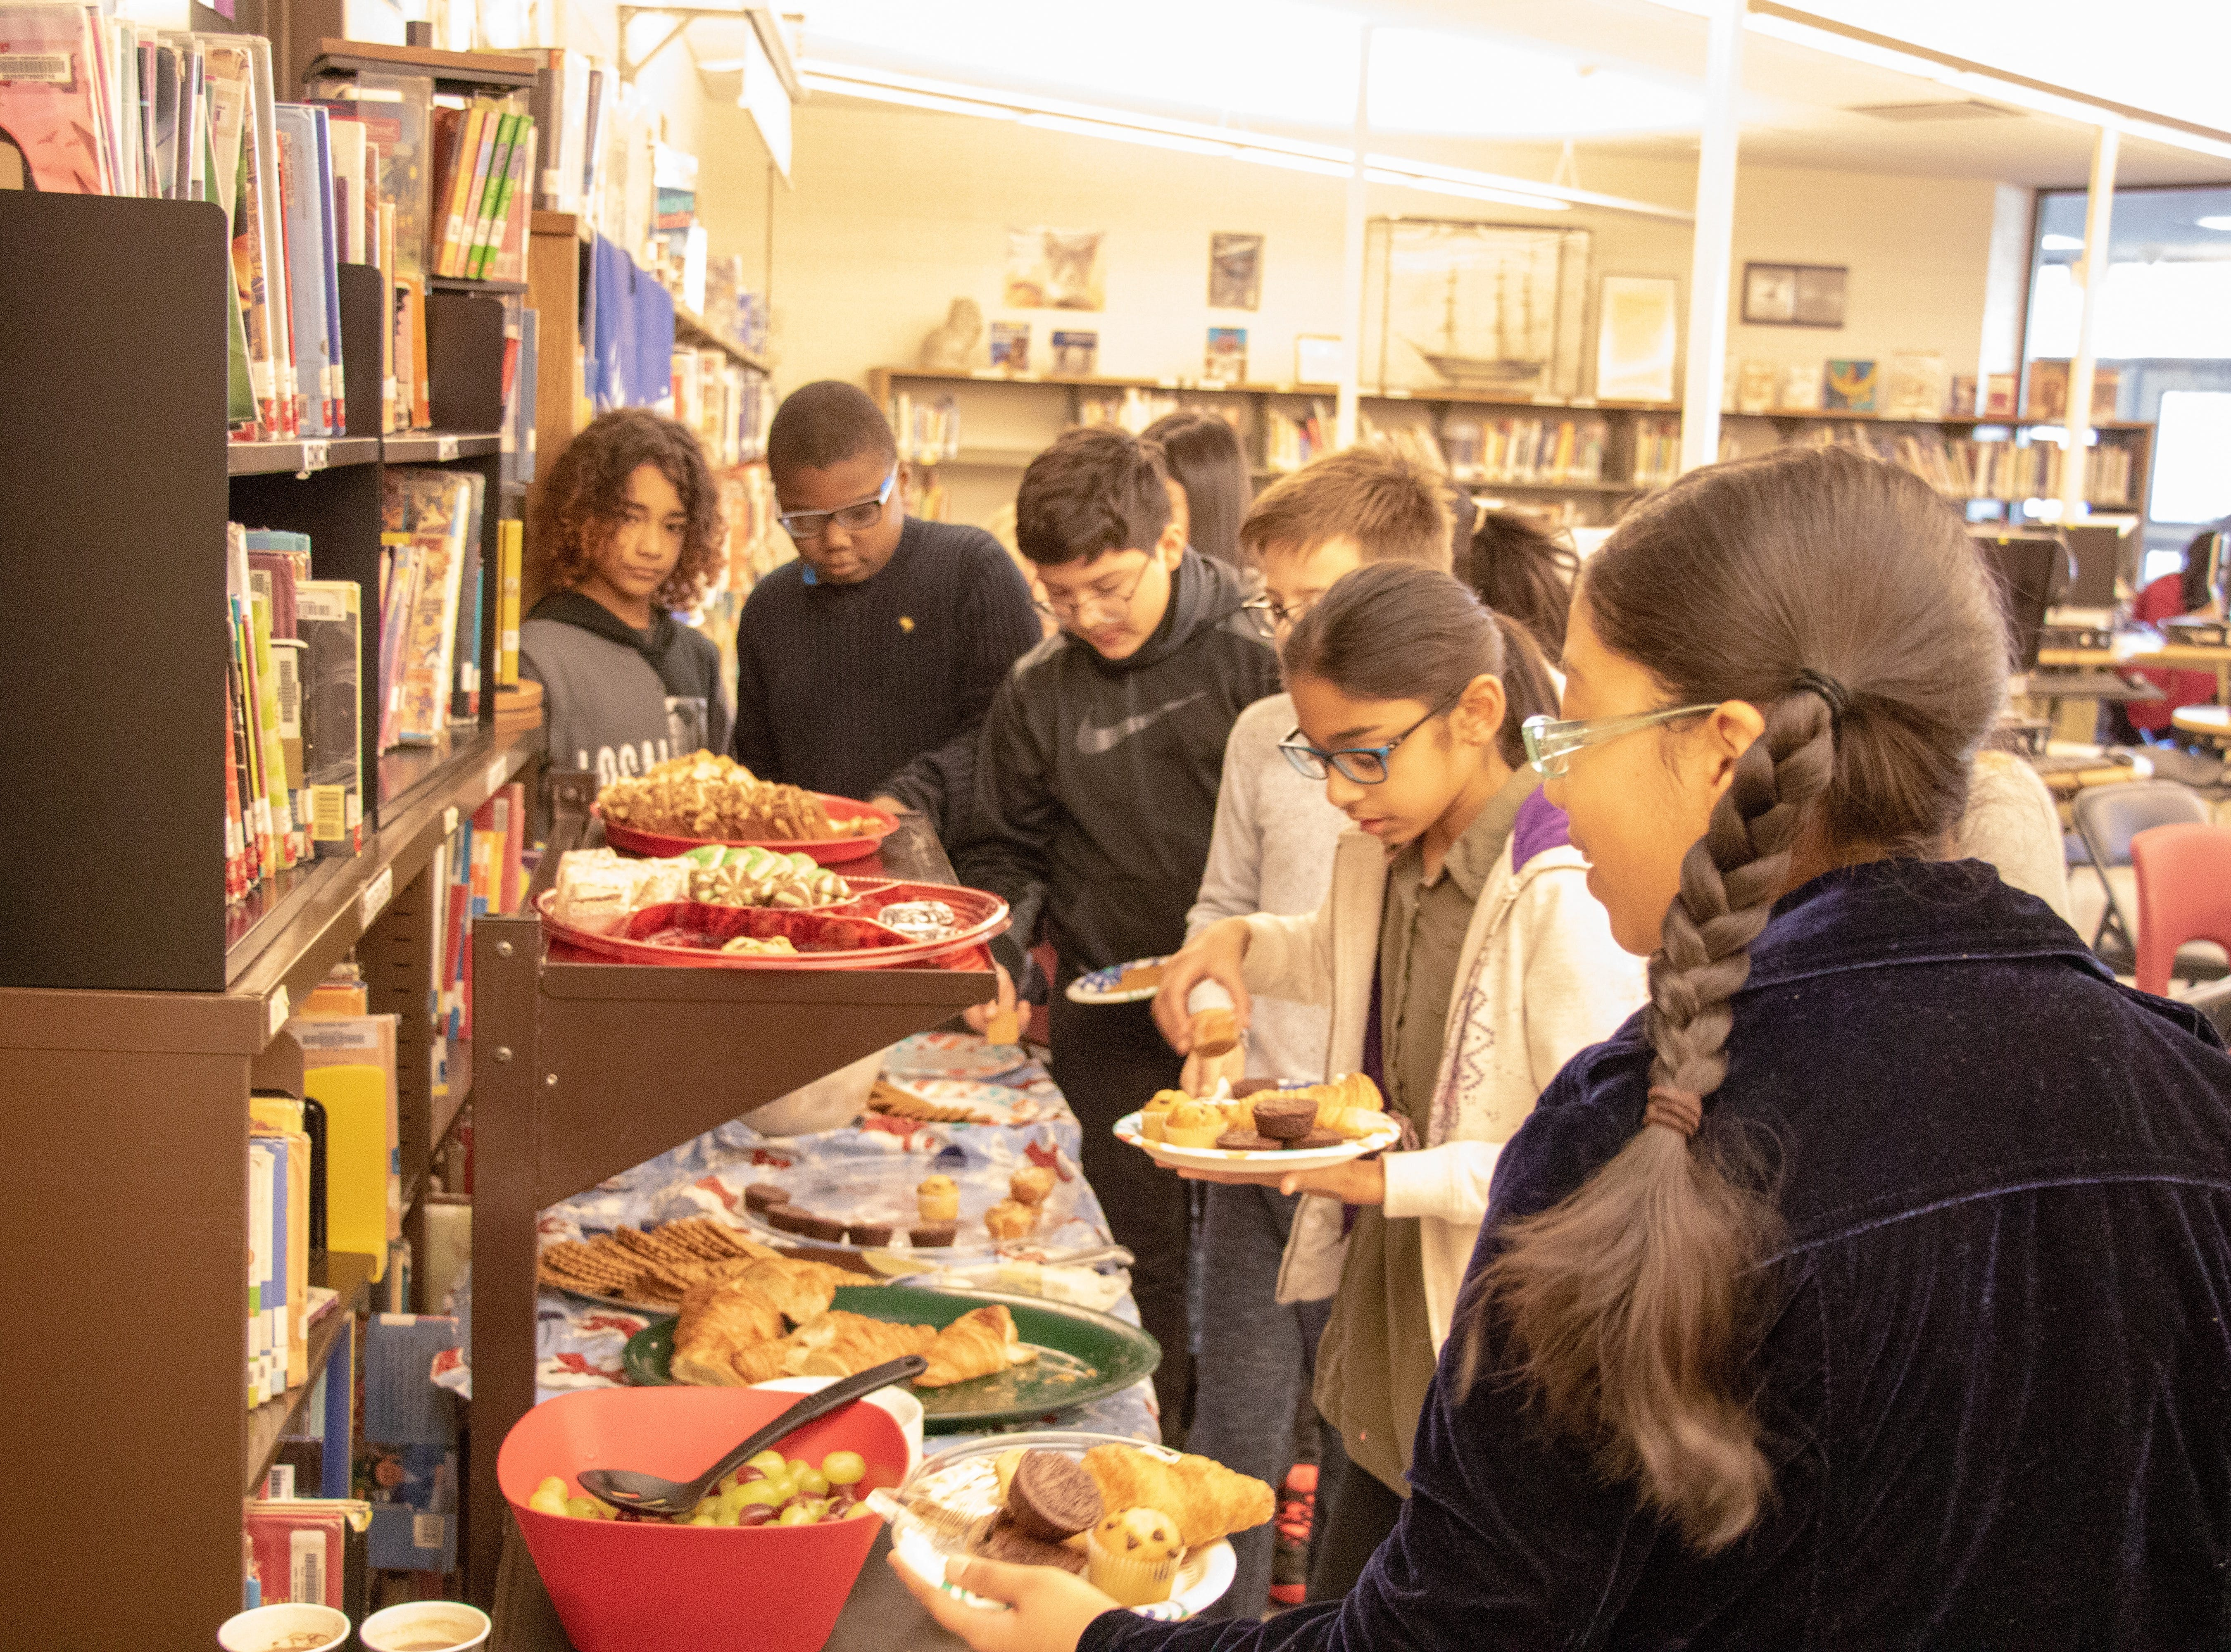 Students in the Honors Language Arts program at the Arbor School in Piscataway hosted Tea and Talk with local senior citizens on Dec. 19 for their Oral History project.